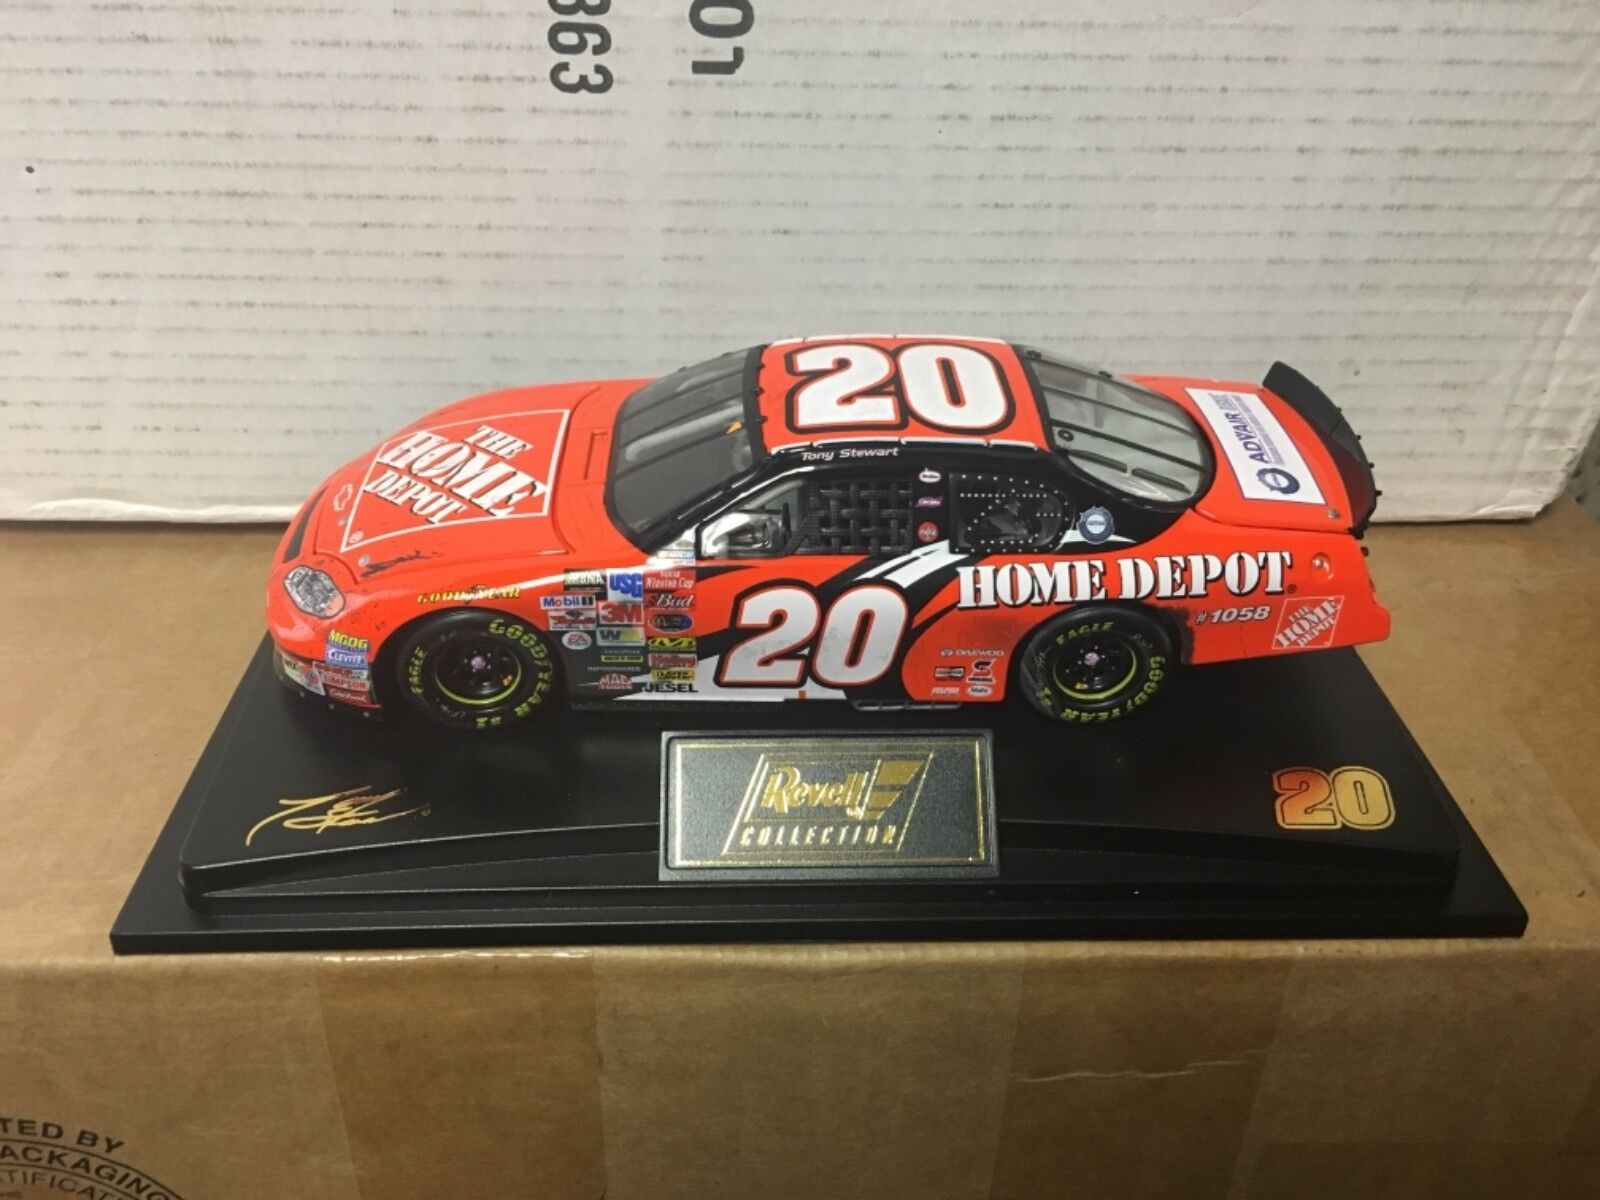 Tony Stewart 1 24 Home Depot 2003 Monte Carlo Raced Version 1,888 Made L@@K